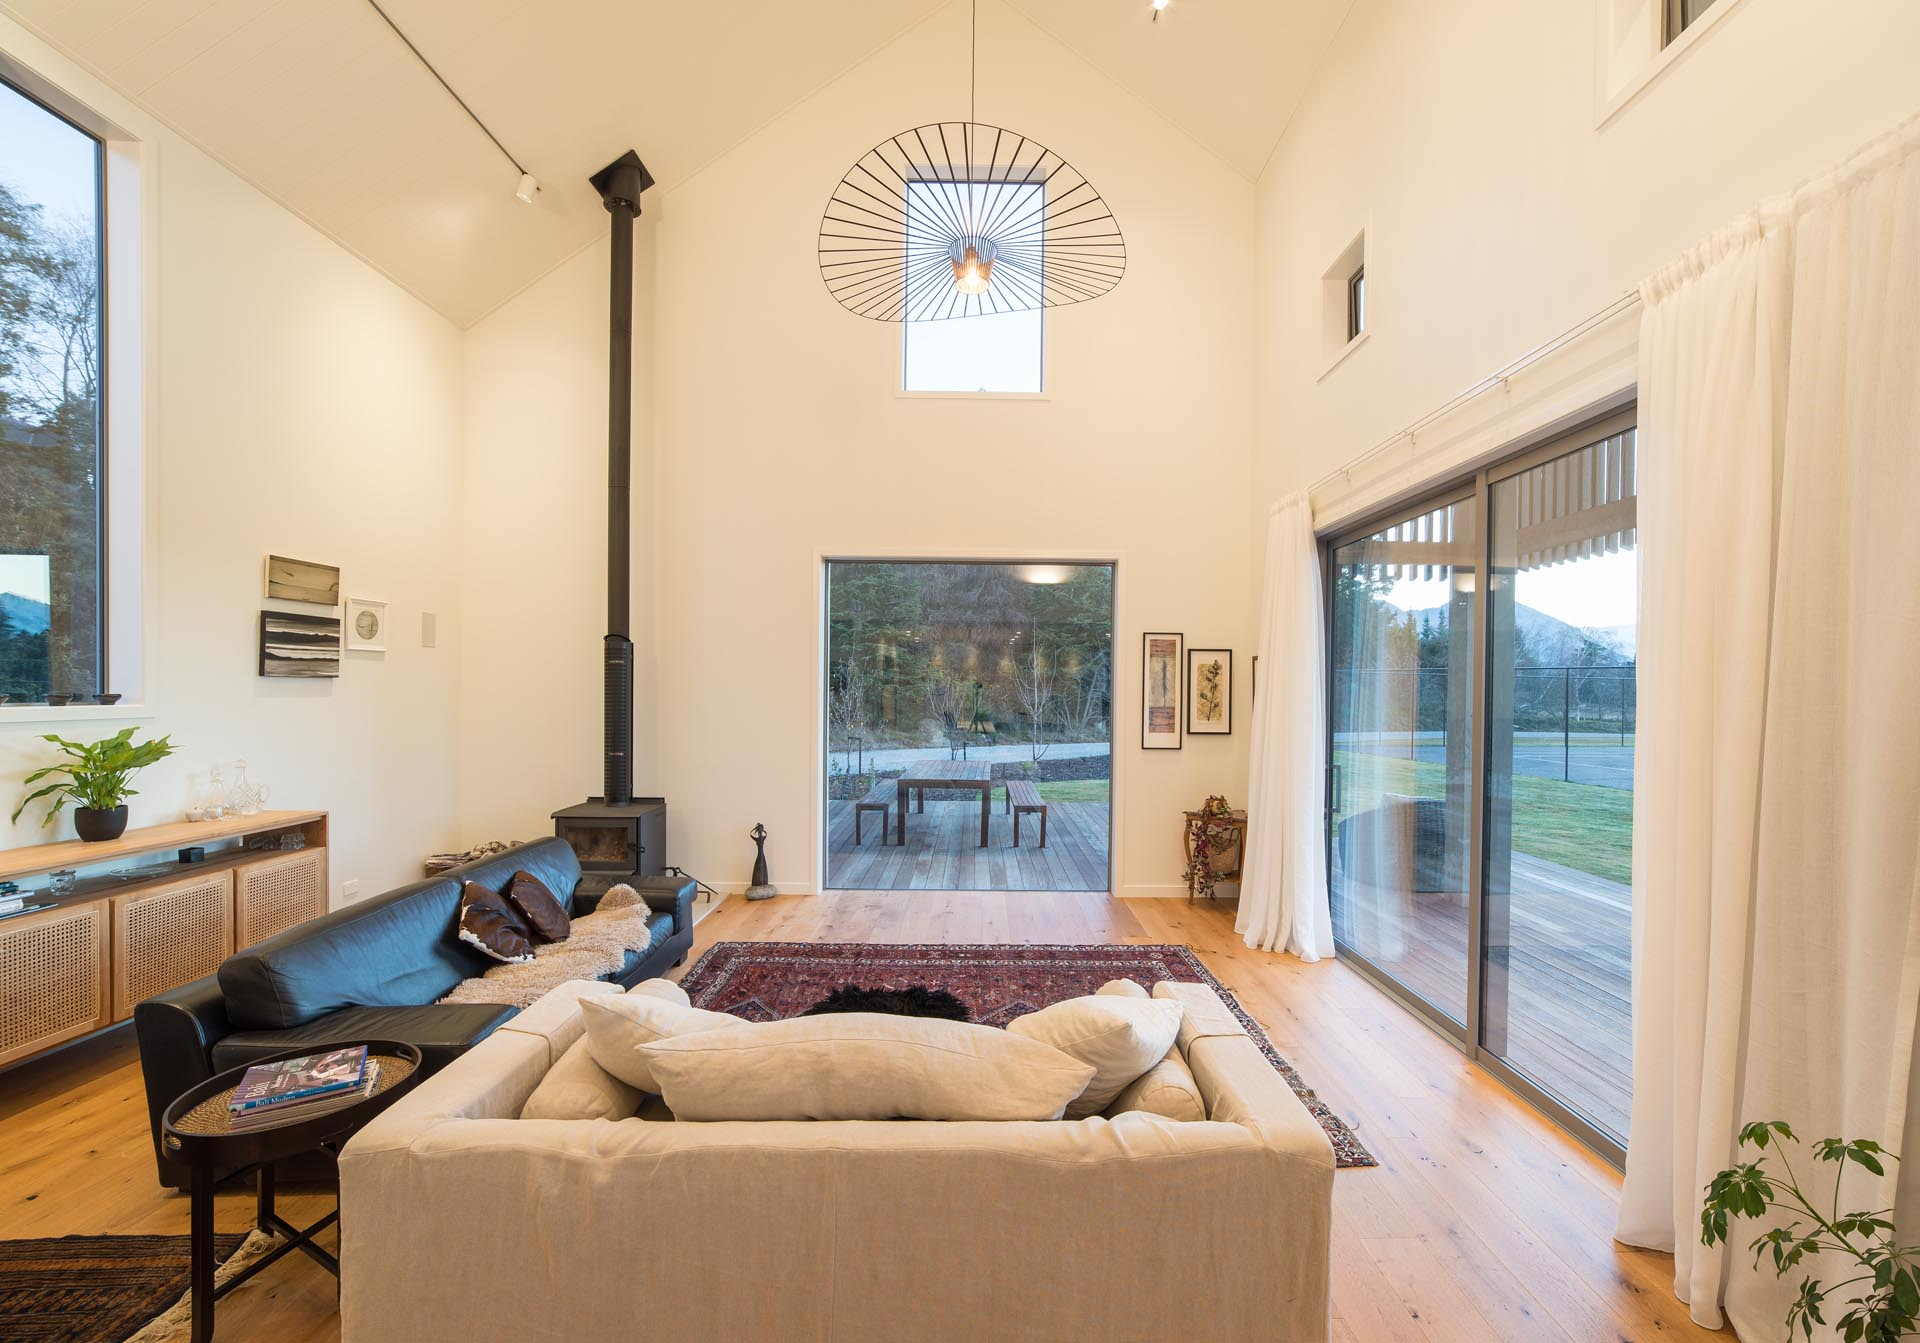 Inside this modern barn-inspired home, the living room has a sense of openness from the double height ceiling, as well as the doors that open to the wood deck outside.